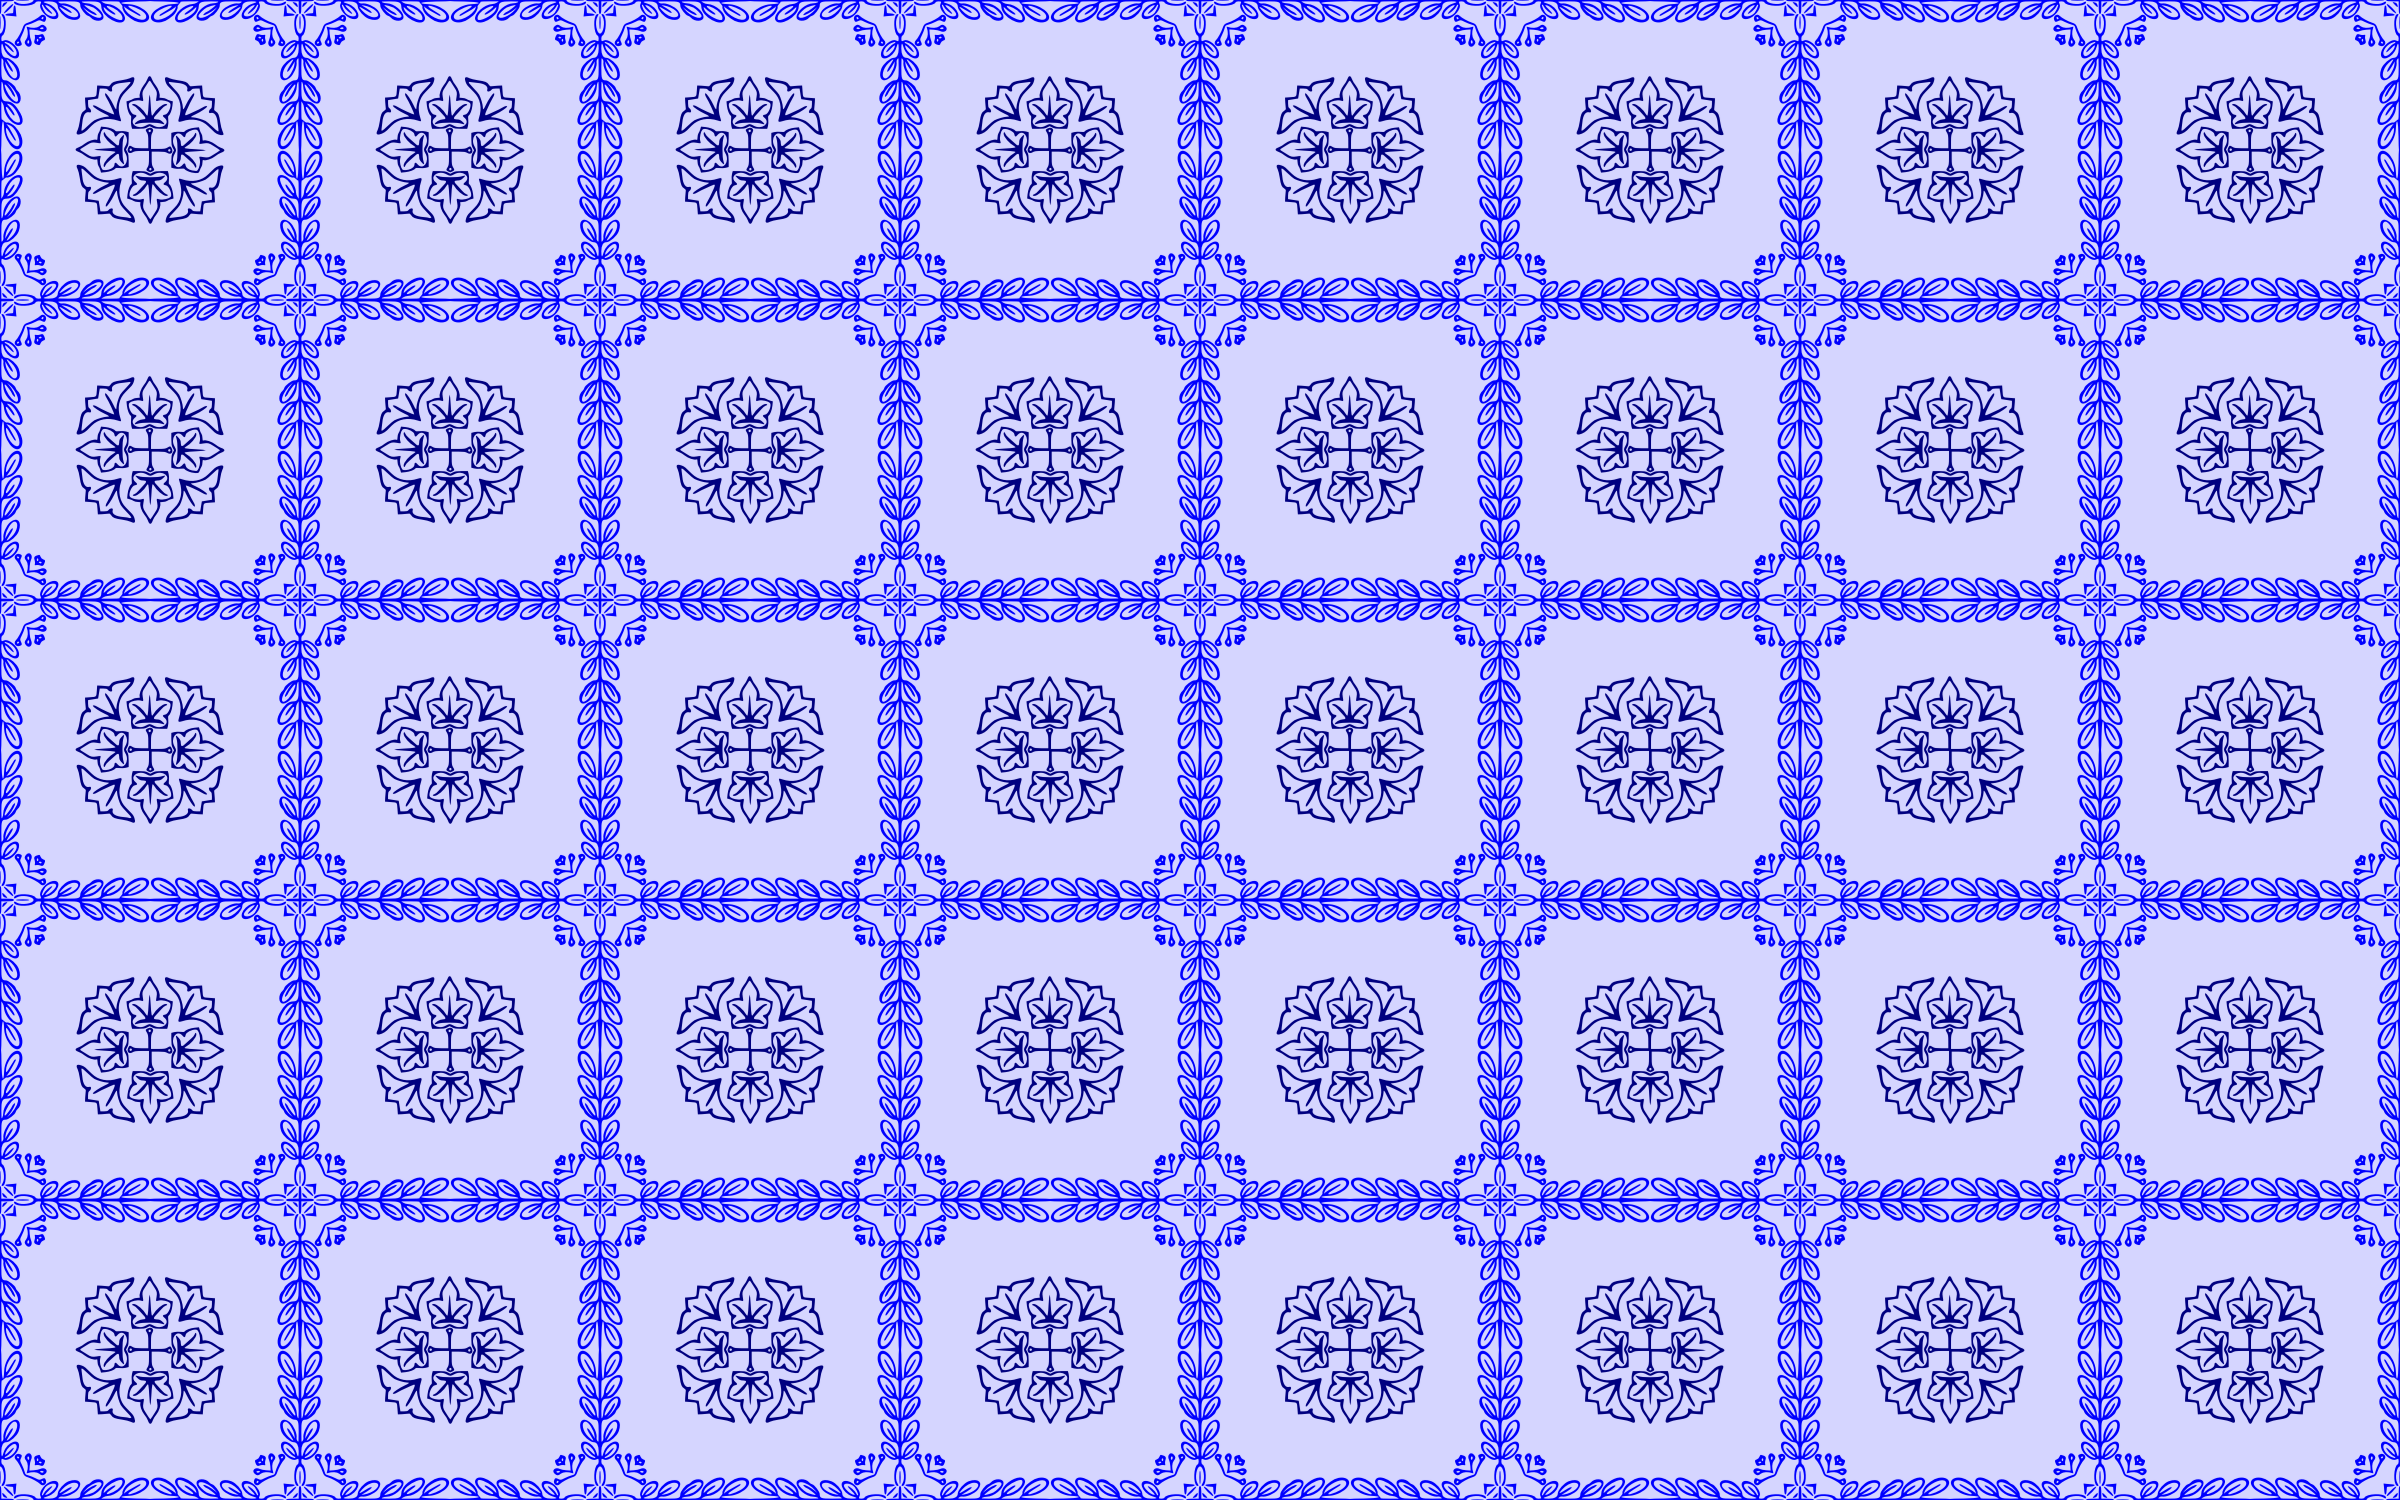 Background pattern 238 (colour 3) by Firkin